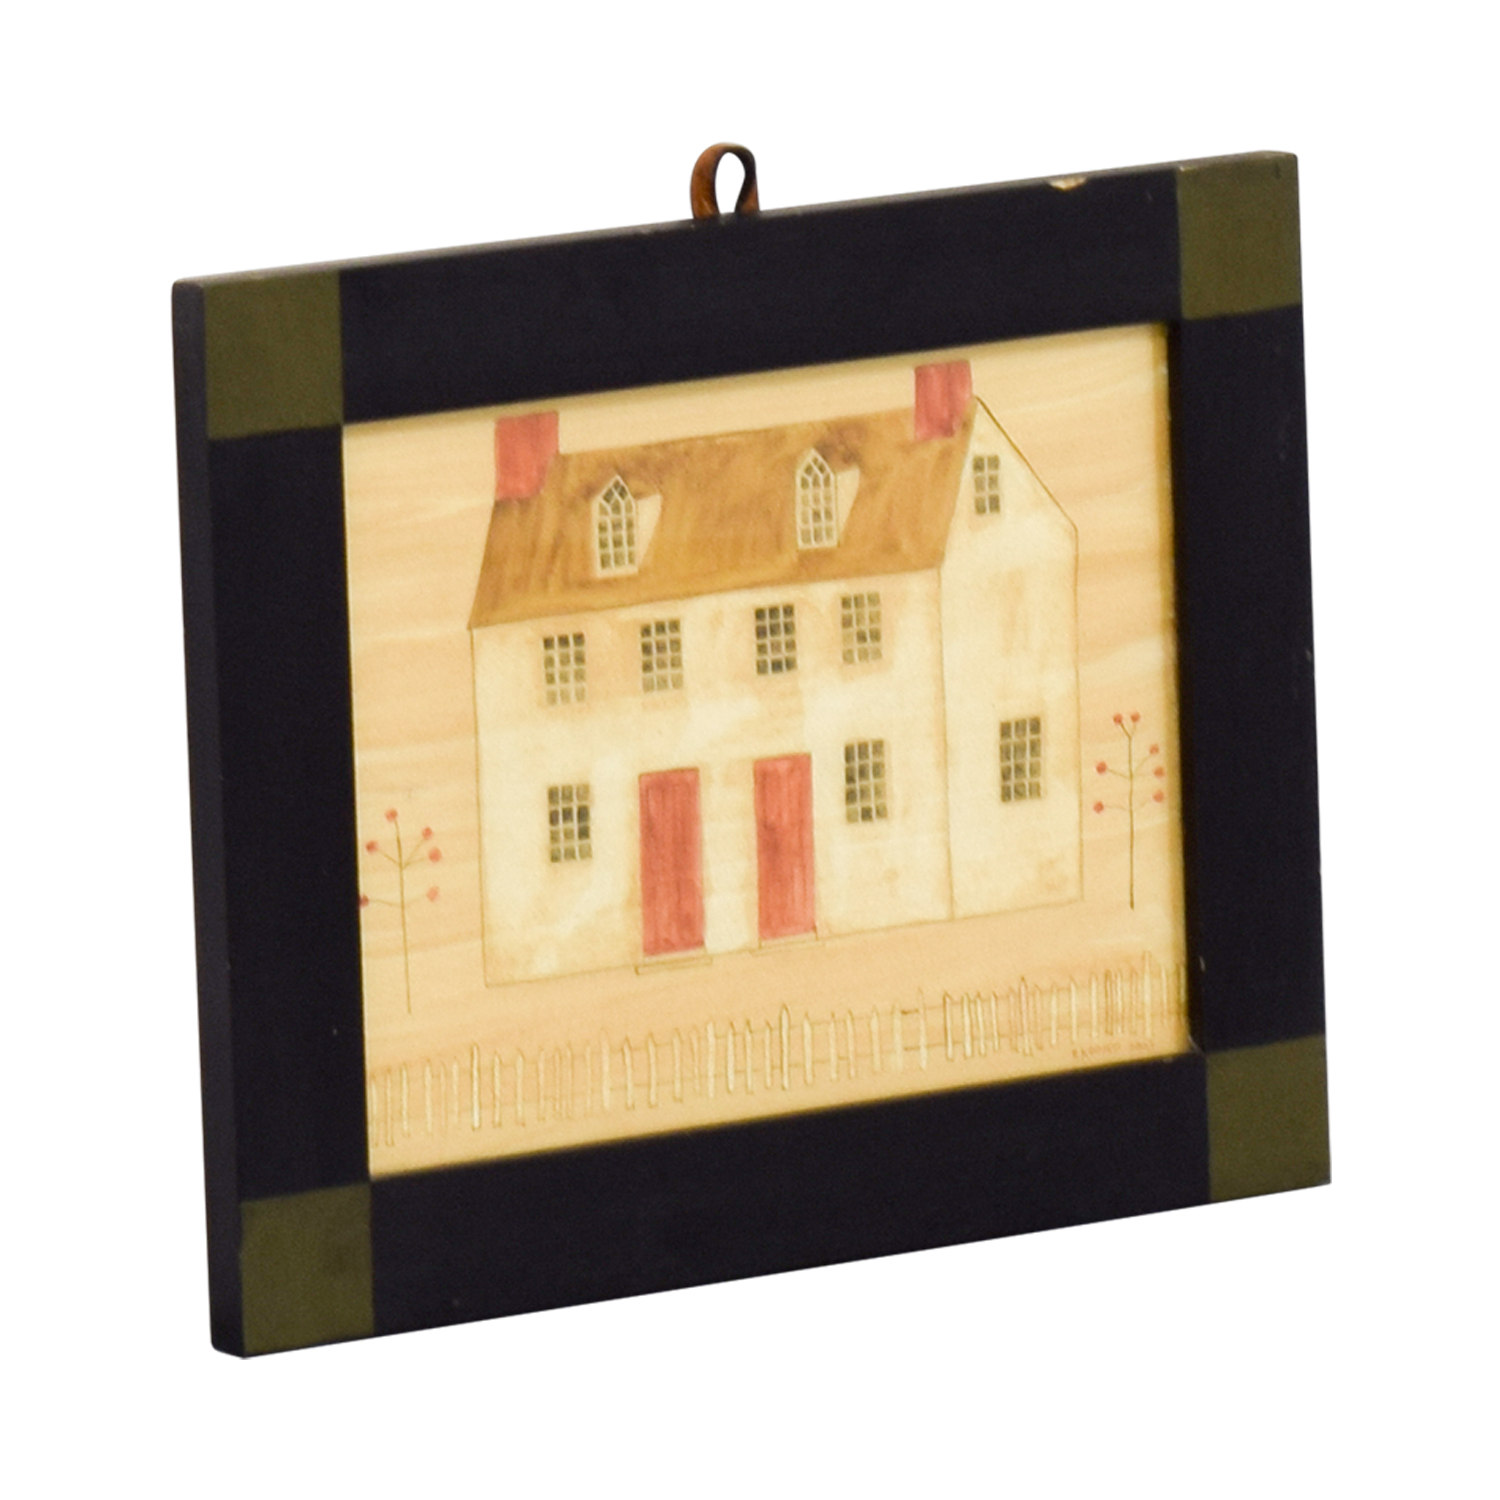 60% OFF - Framed Rustic Farmhouse Artwork / Decor